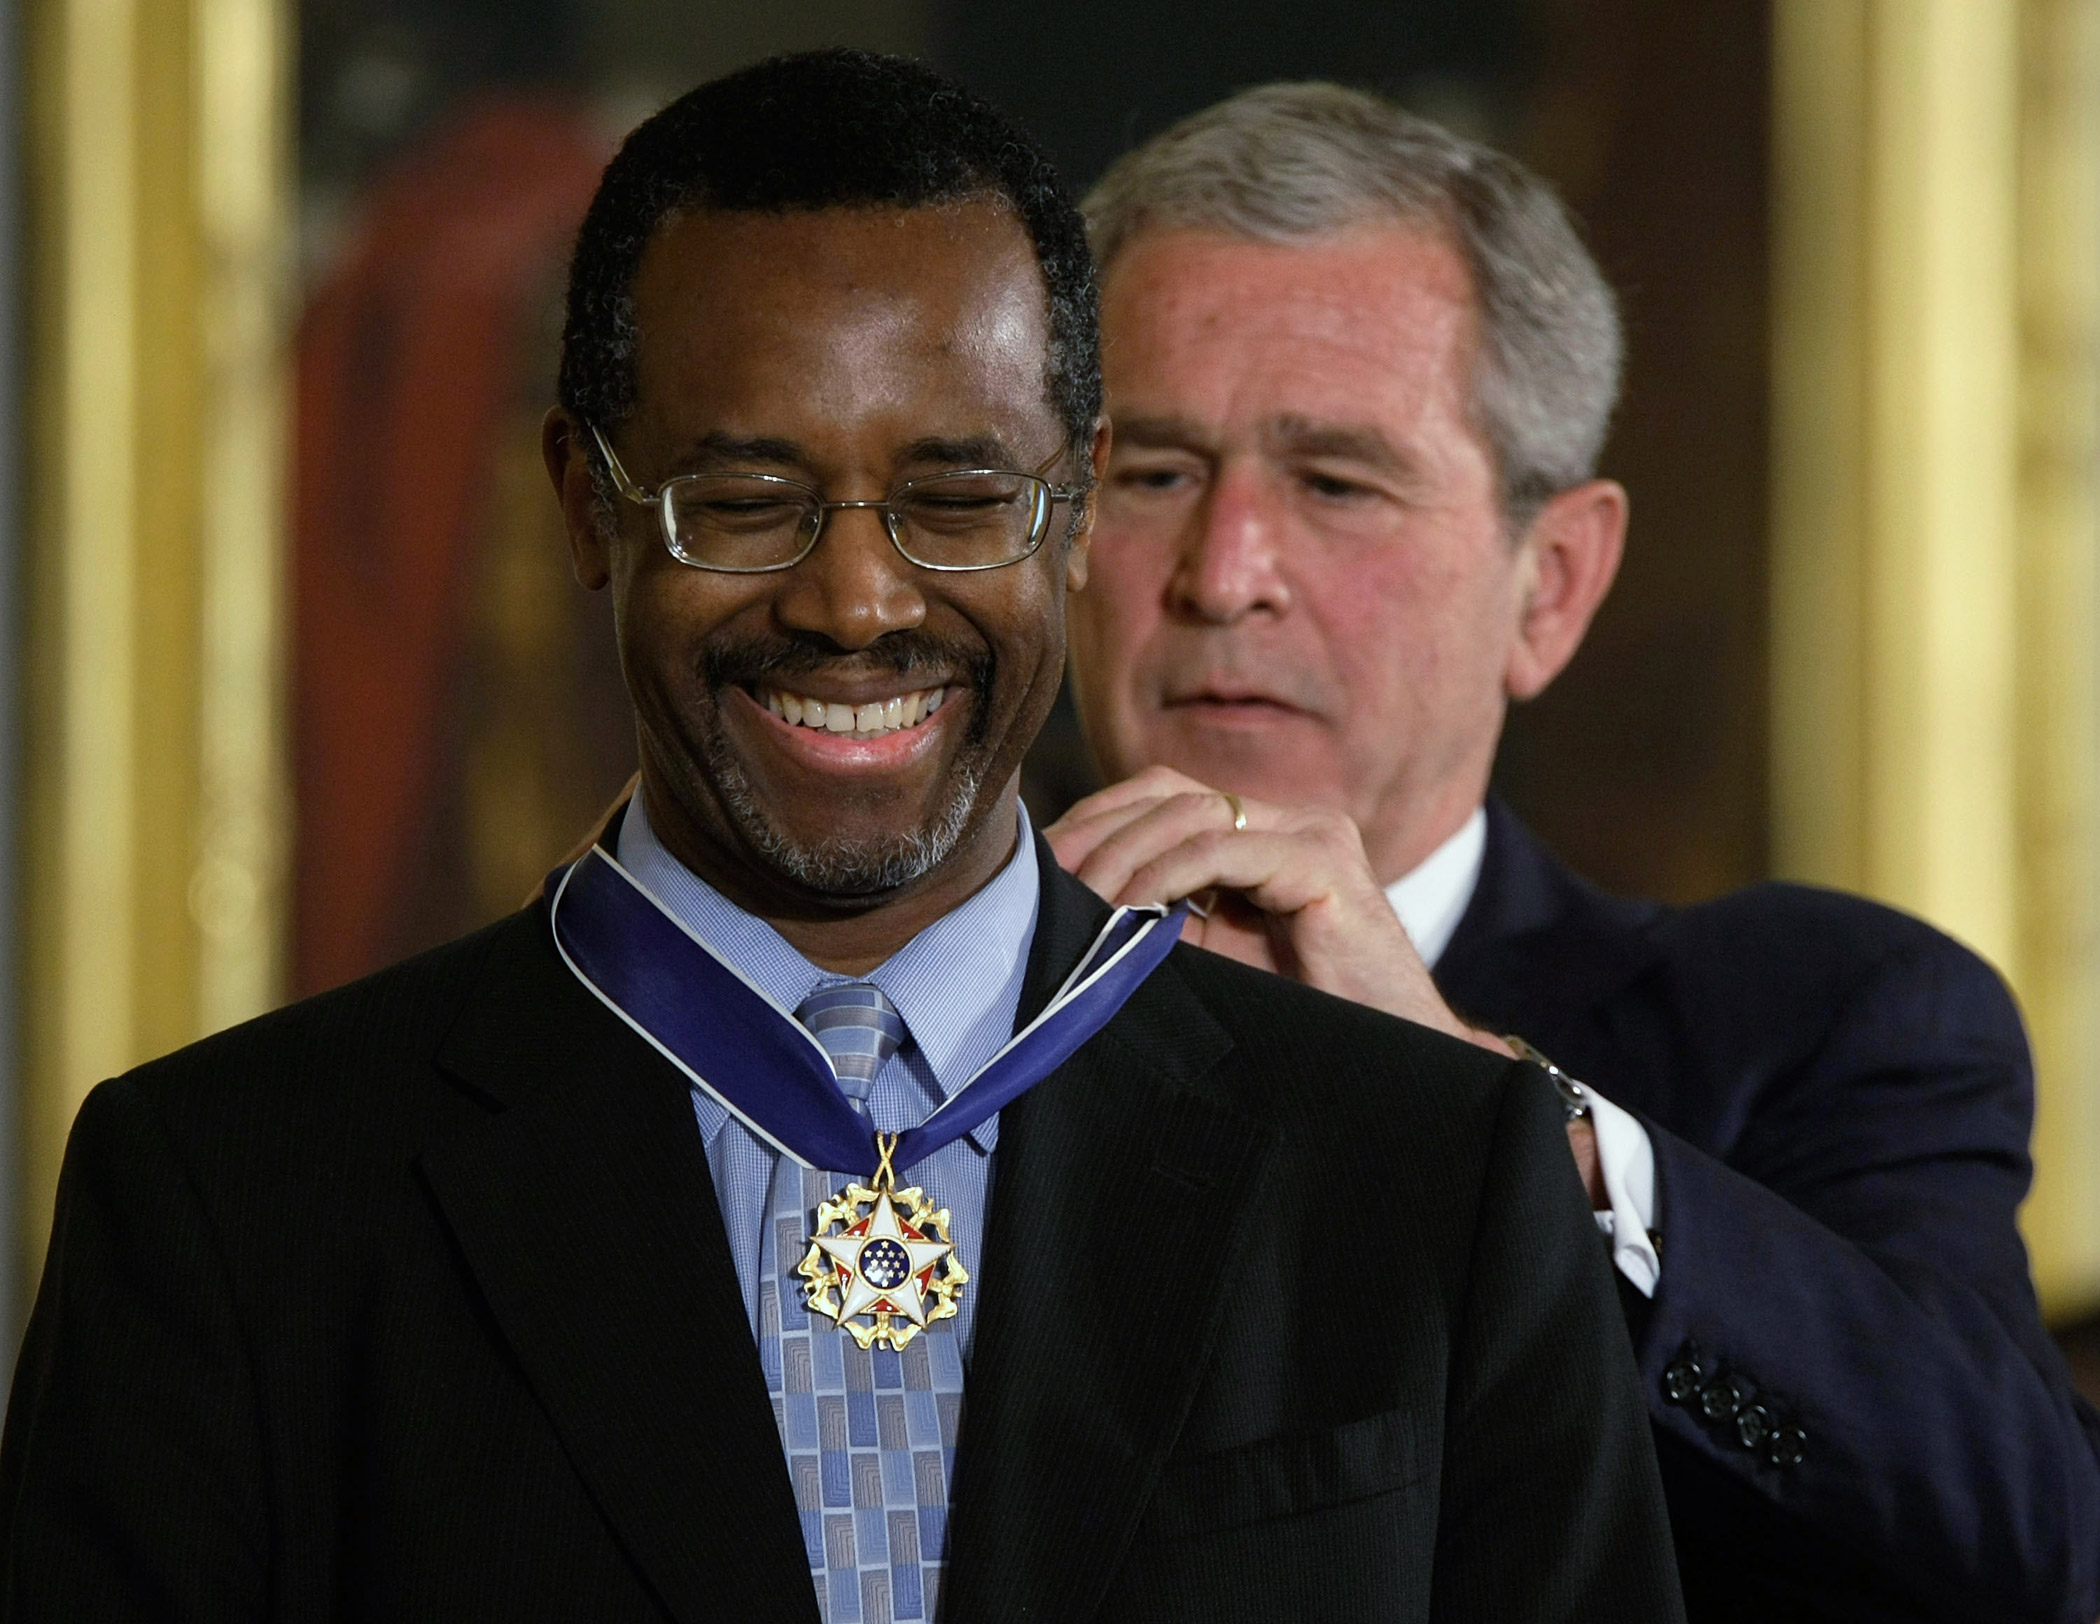 George W. Bush presents a Presidential Medal of Freedom to Ben Carson for his work with neurological disorders on June 19, 2008 at the White House in Washington.